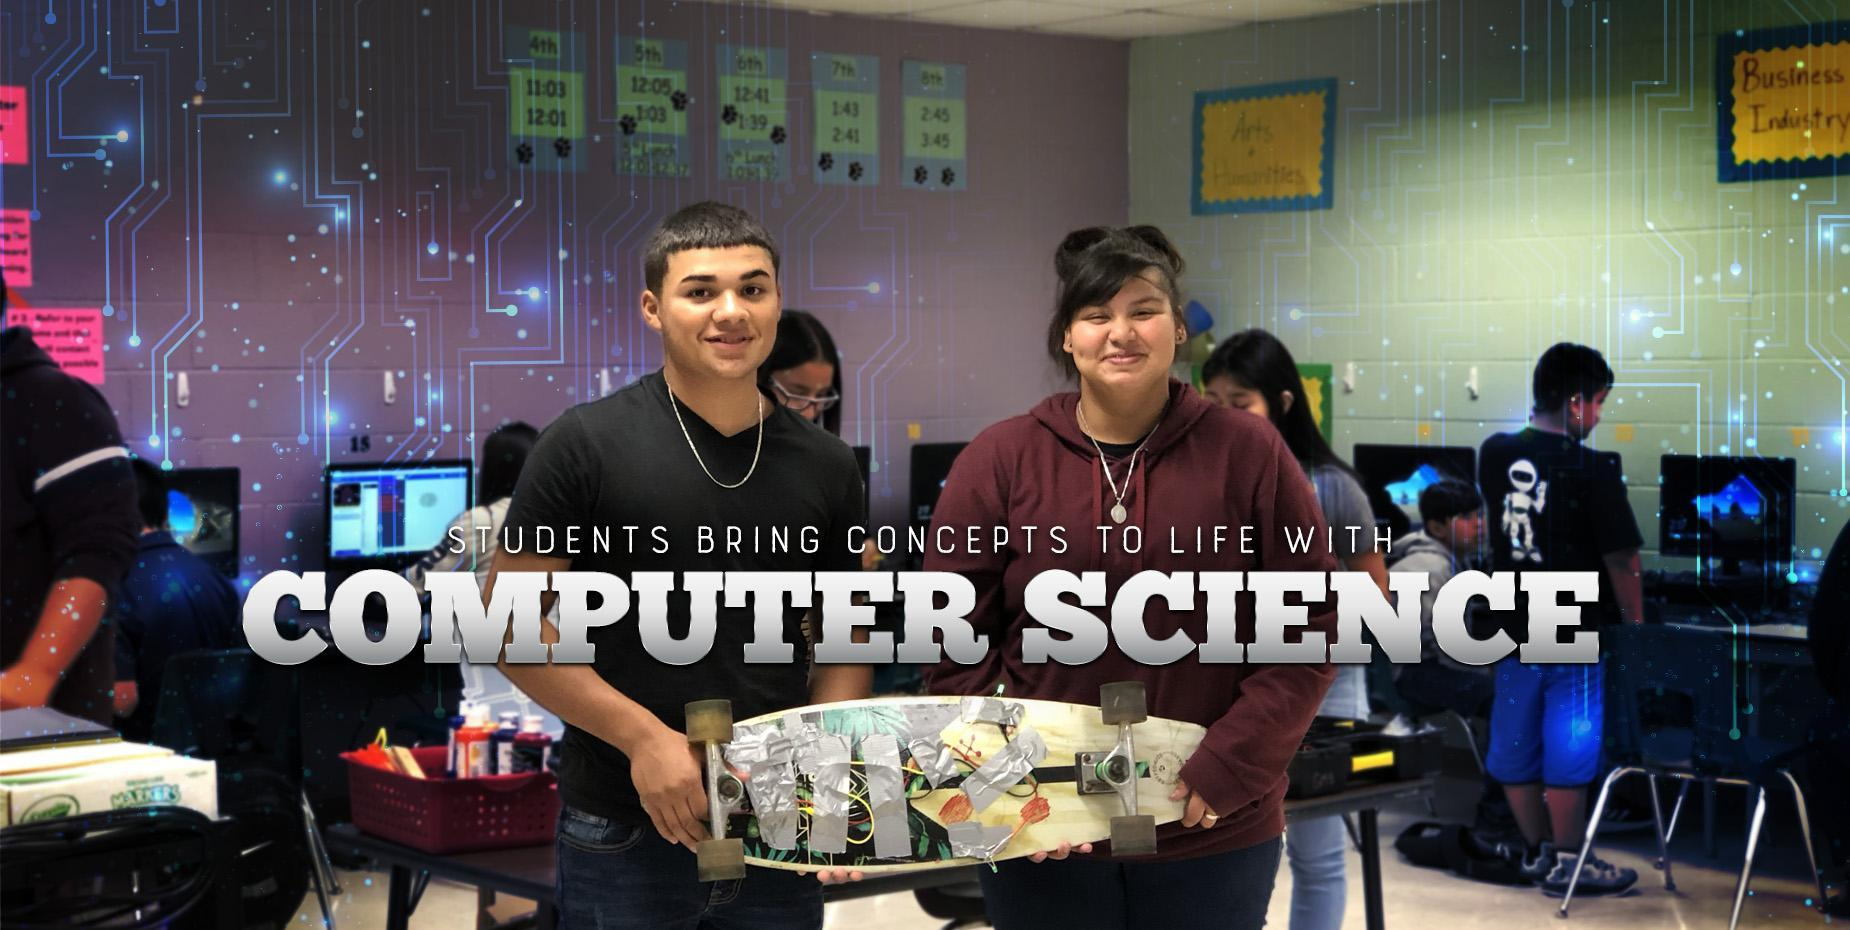 Students bring concepts to life with computer science